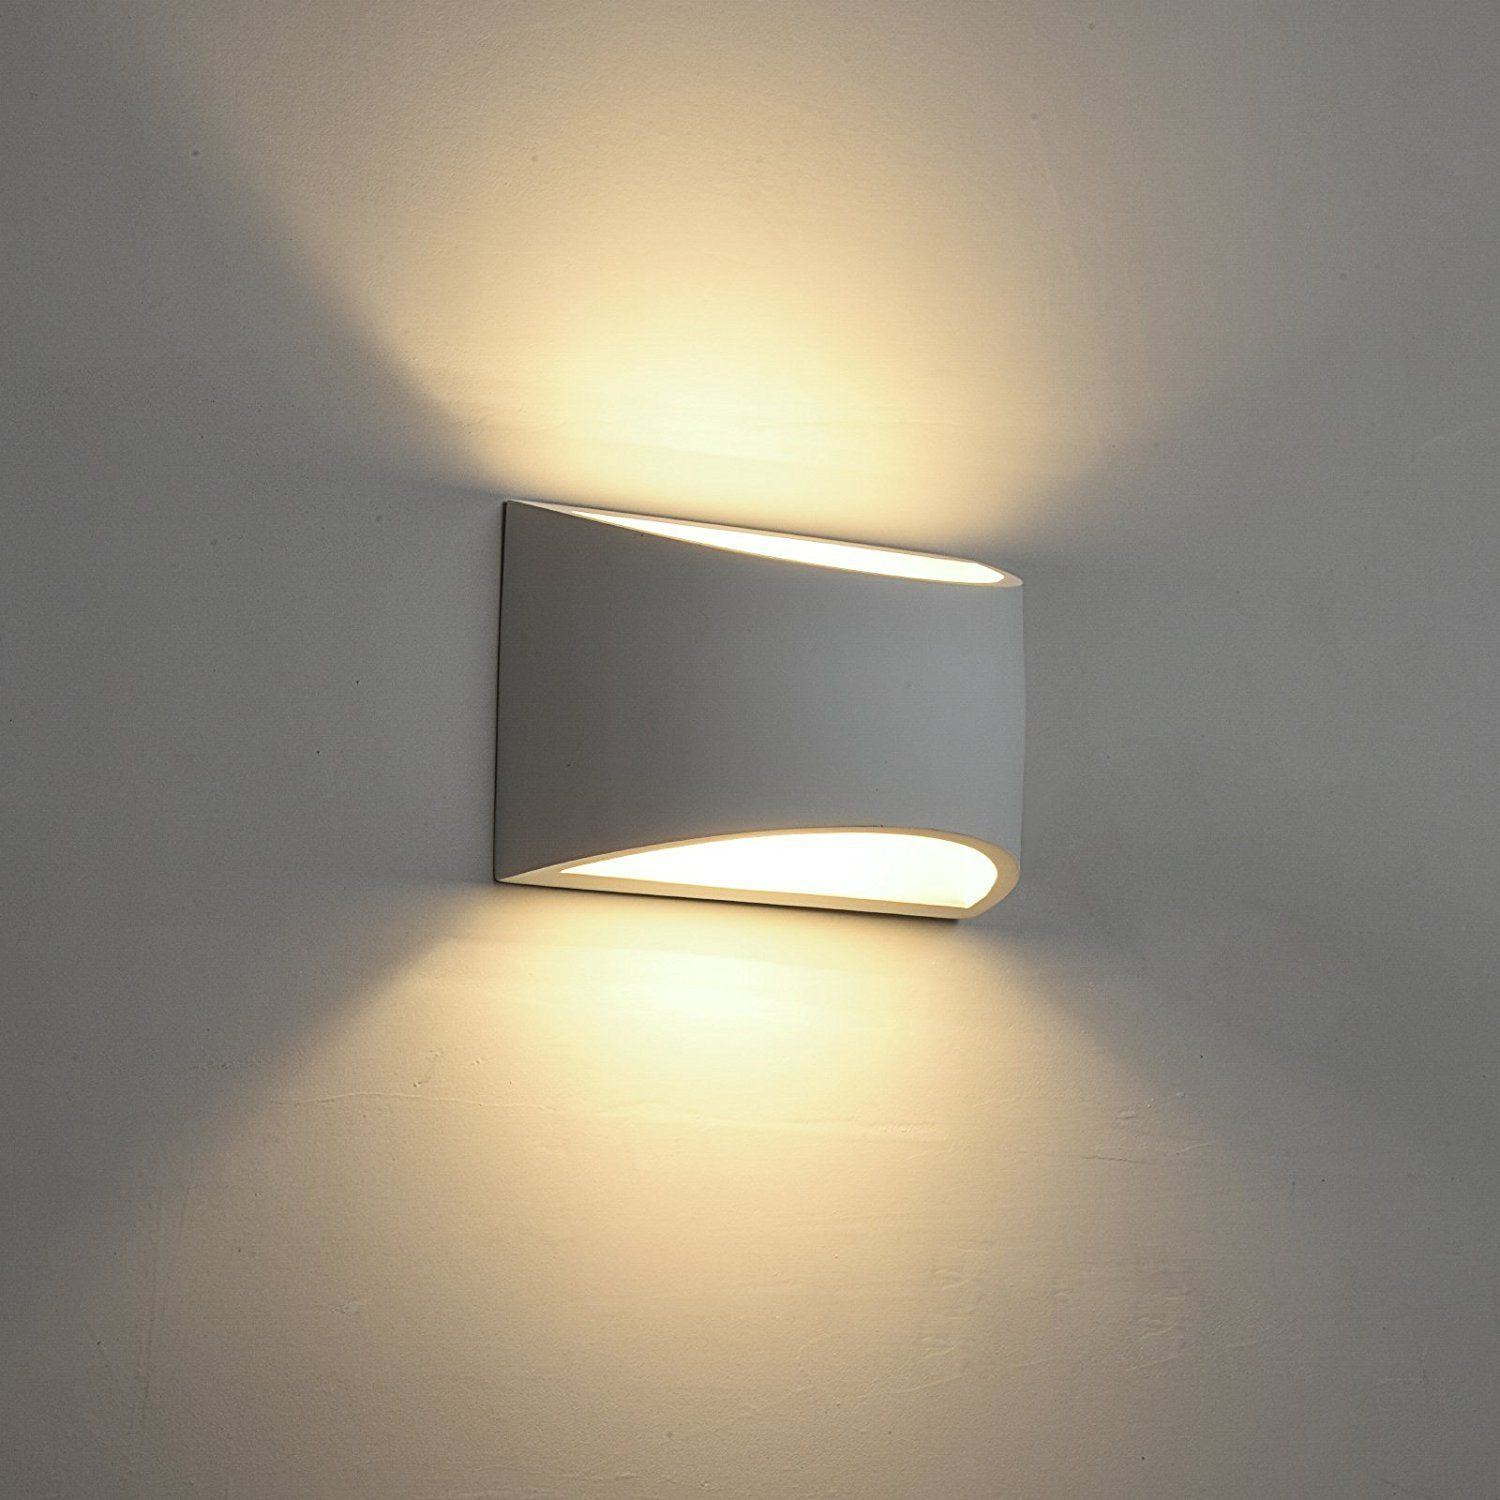 Deckey Wall Light Led Up And Down Indoor Lamp Uplighter Downlighter Warm White Amazon Co Uk Lighting Wall Lights Wall Sconce Lighting Led Wall Sconce